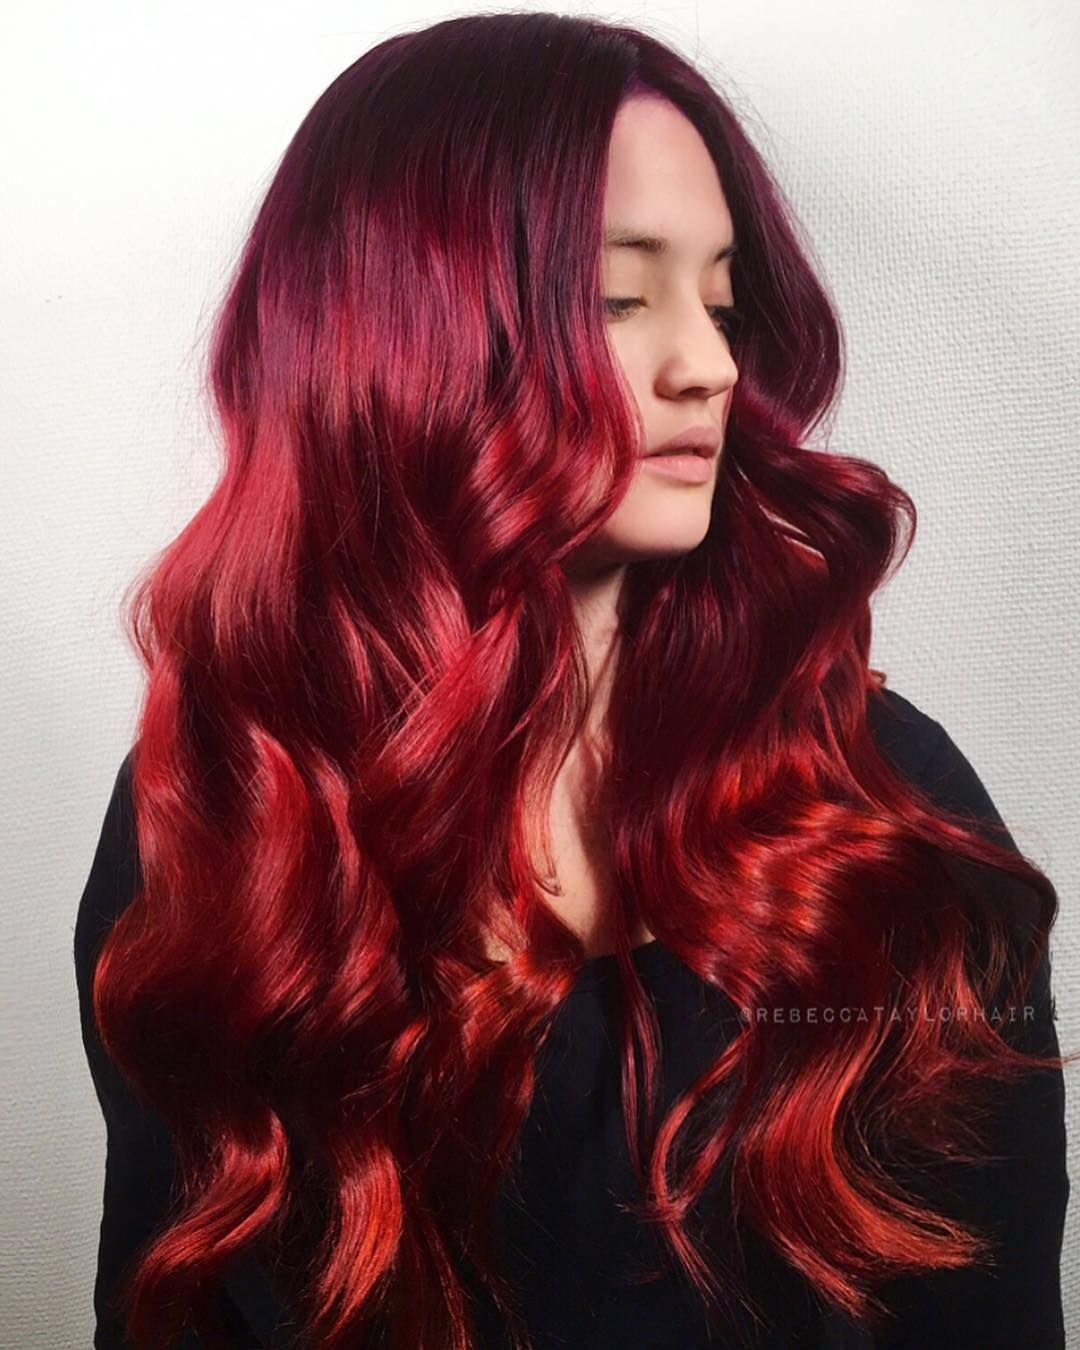 Lush By Rebeccataylorhair I Used Kenra 6rr With Red Booster On Level 7 Prelightened Balayage Haircolor Colorfulhai Hot Hair Styles Hair Color Balayage